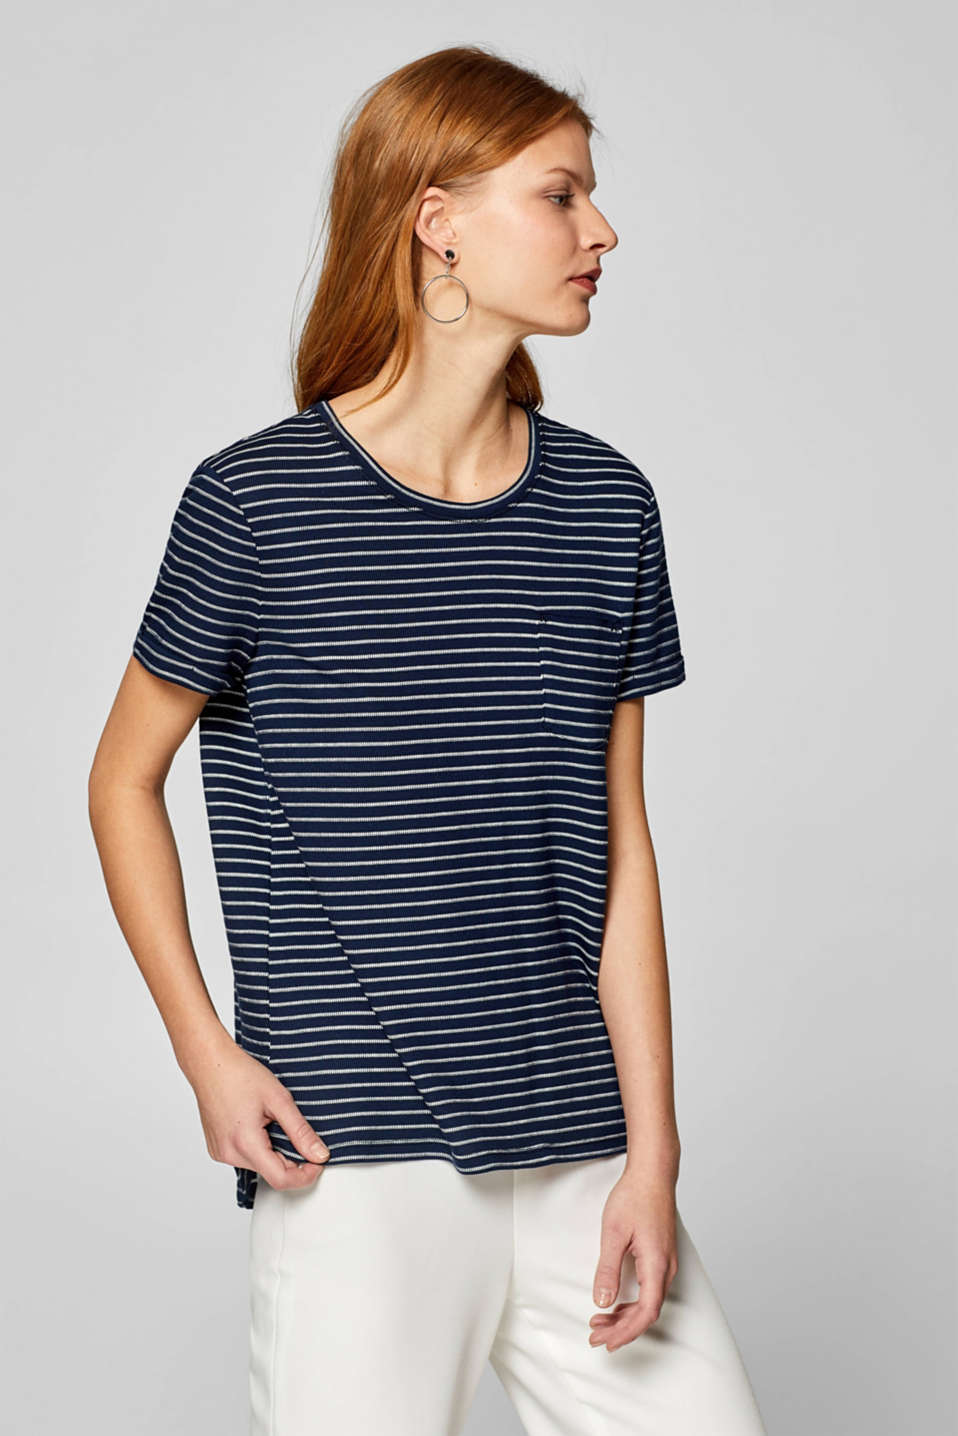 edc - T-shirt with textured stripes and breast pocket